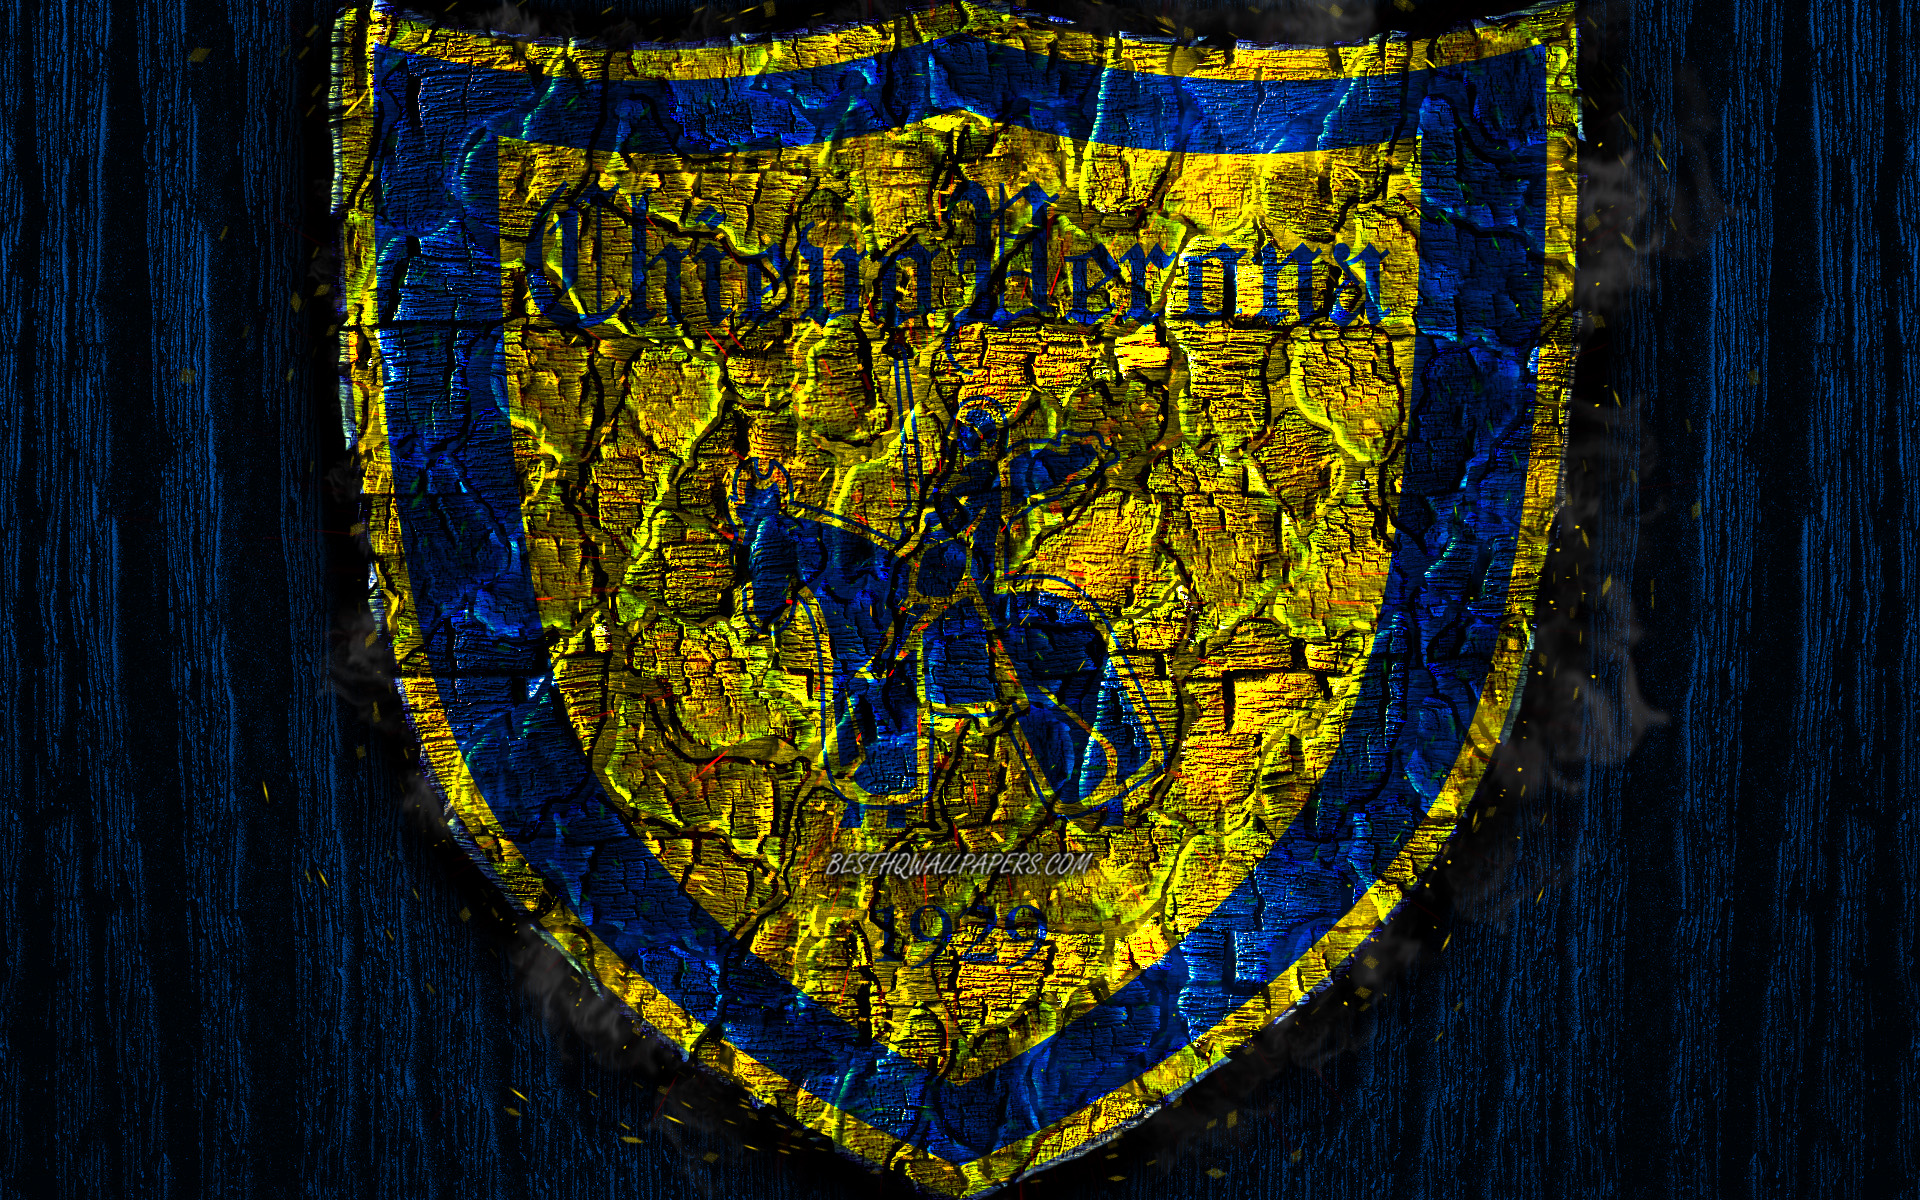 Download wallpapers Chievo FC, scorched logo, Serie A, blue wooden